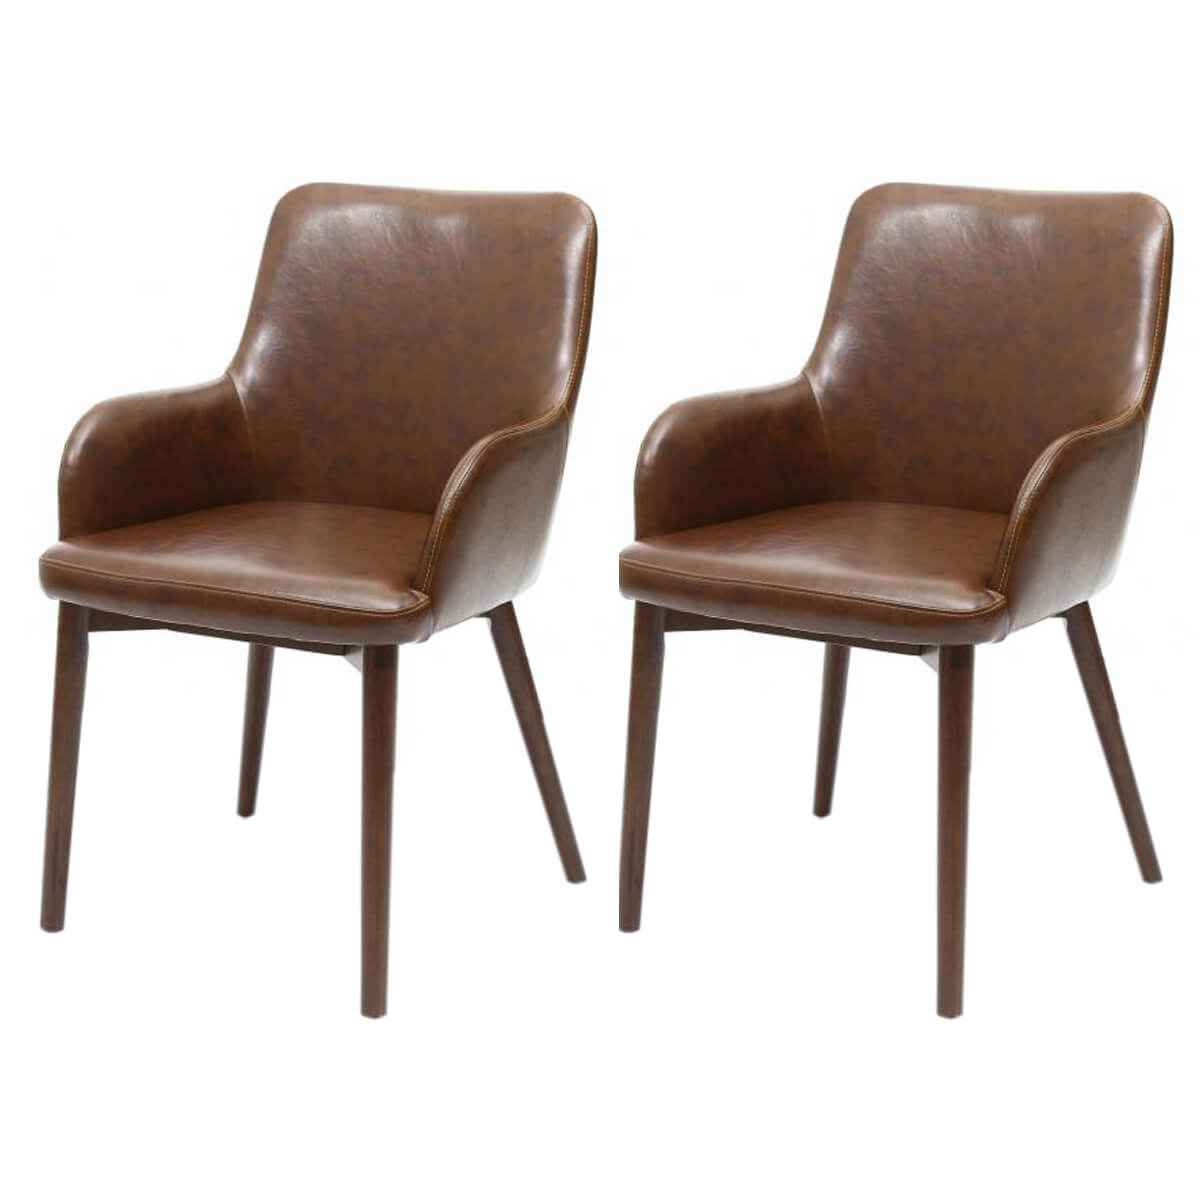 dining chairs uk walmart recliner chair covers sidcup vintage brown leather free delivery